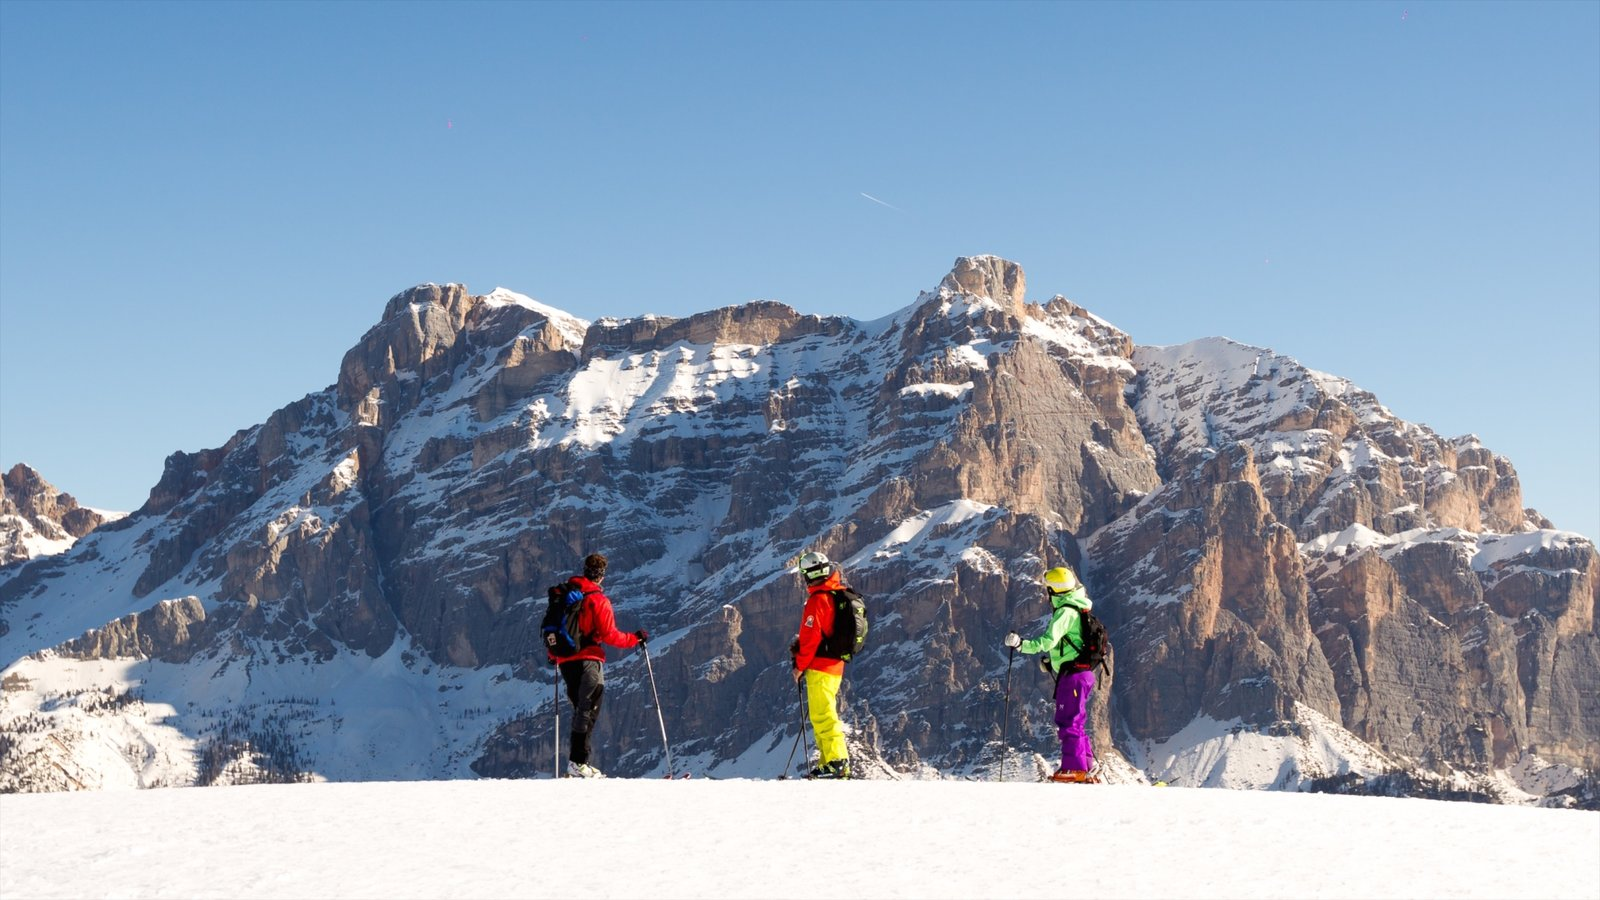 Alta Badia showing snow and mountains as well as a small group of people